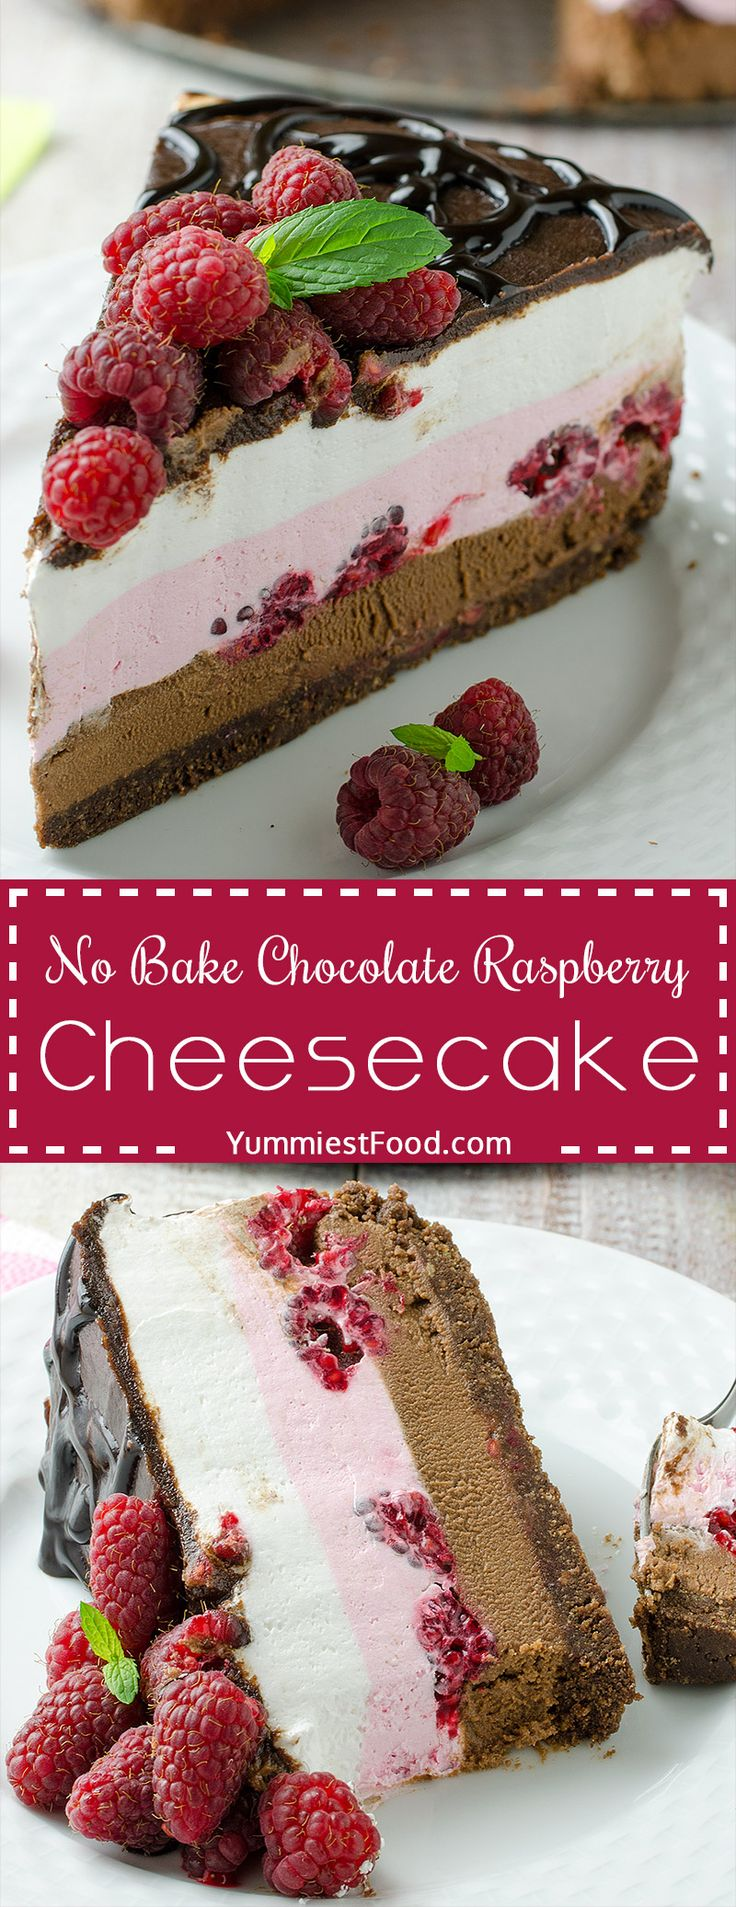 No Bake Chocolate Raspberry Cheesecake – very nice combination of raspberries, chocolate and cheese! So smooth, creamy and moist! An easy recipe that is great option for these warm summer days!